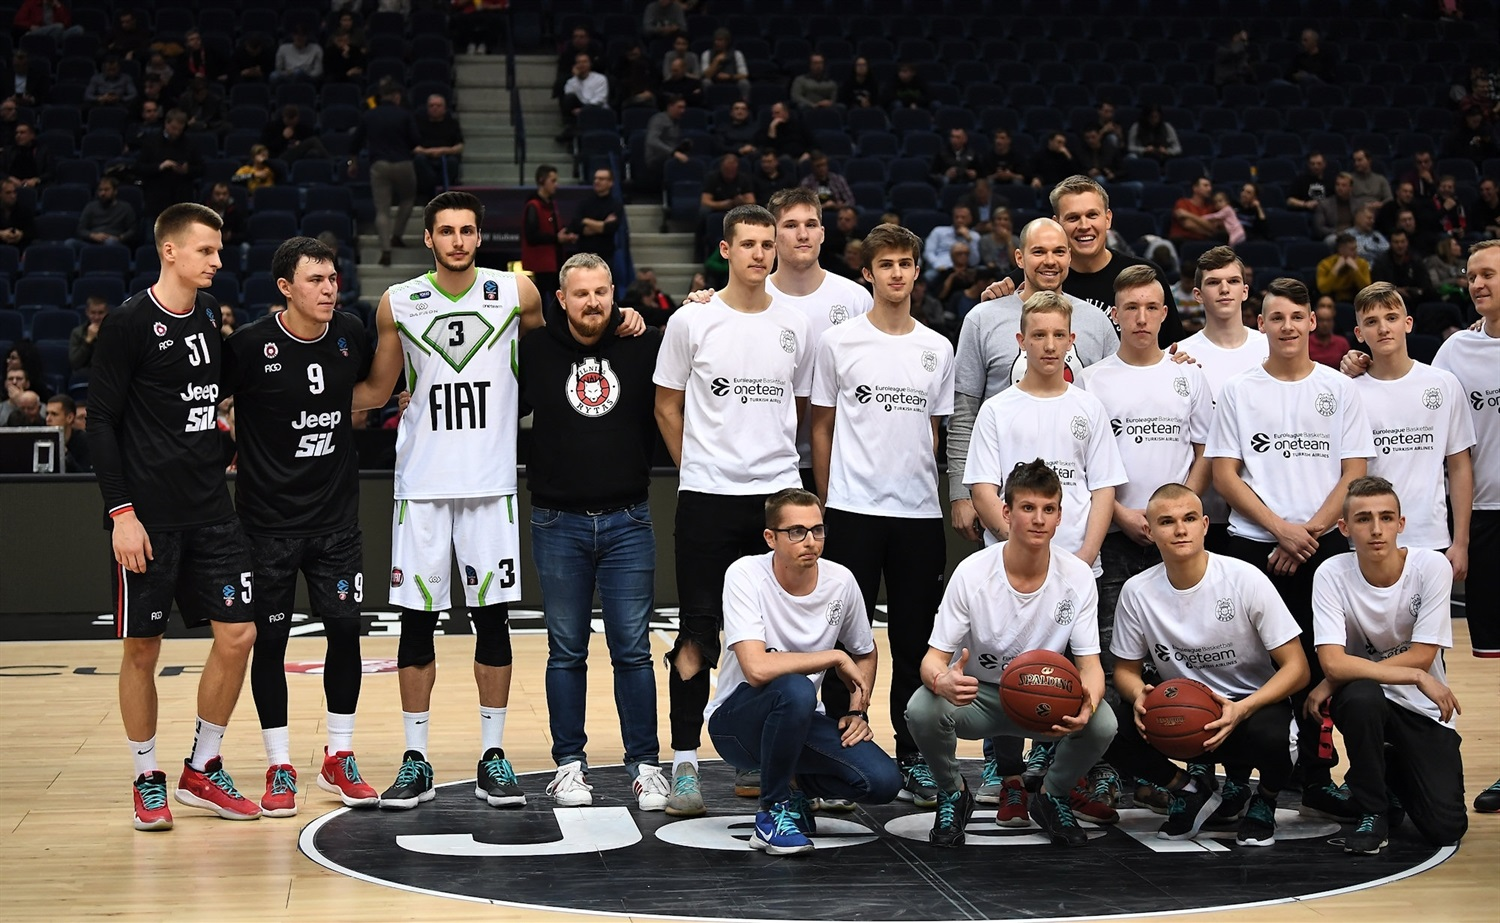 One Team Games - Rytas Vilnius vs. Tofas Bursa (photo Tofas - Ozan Demir) - EC19